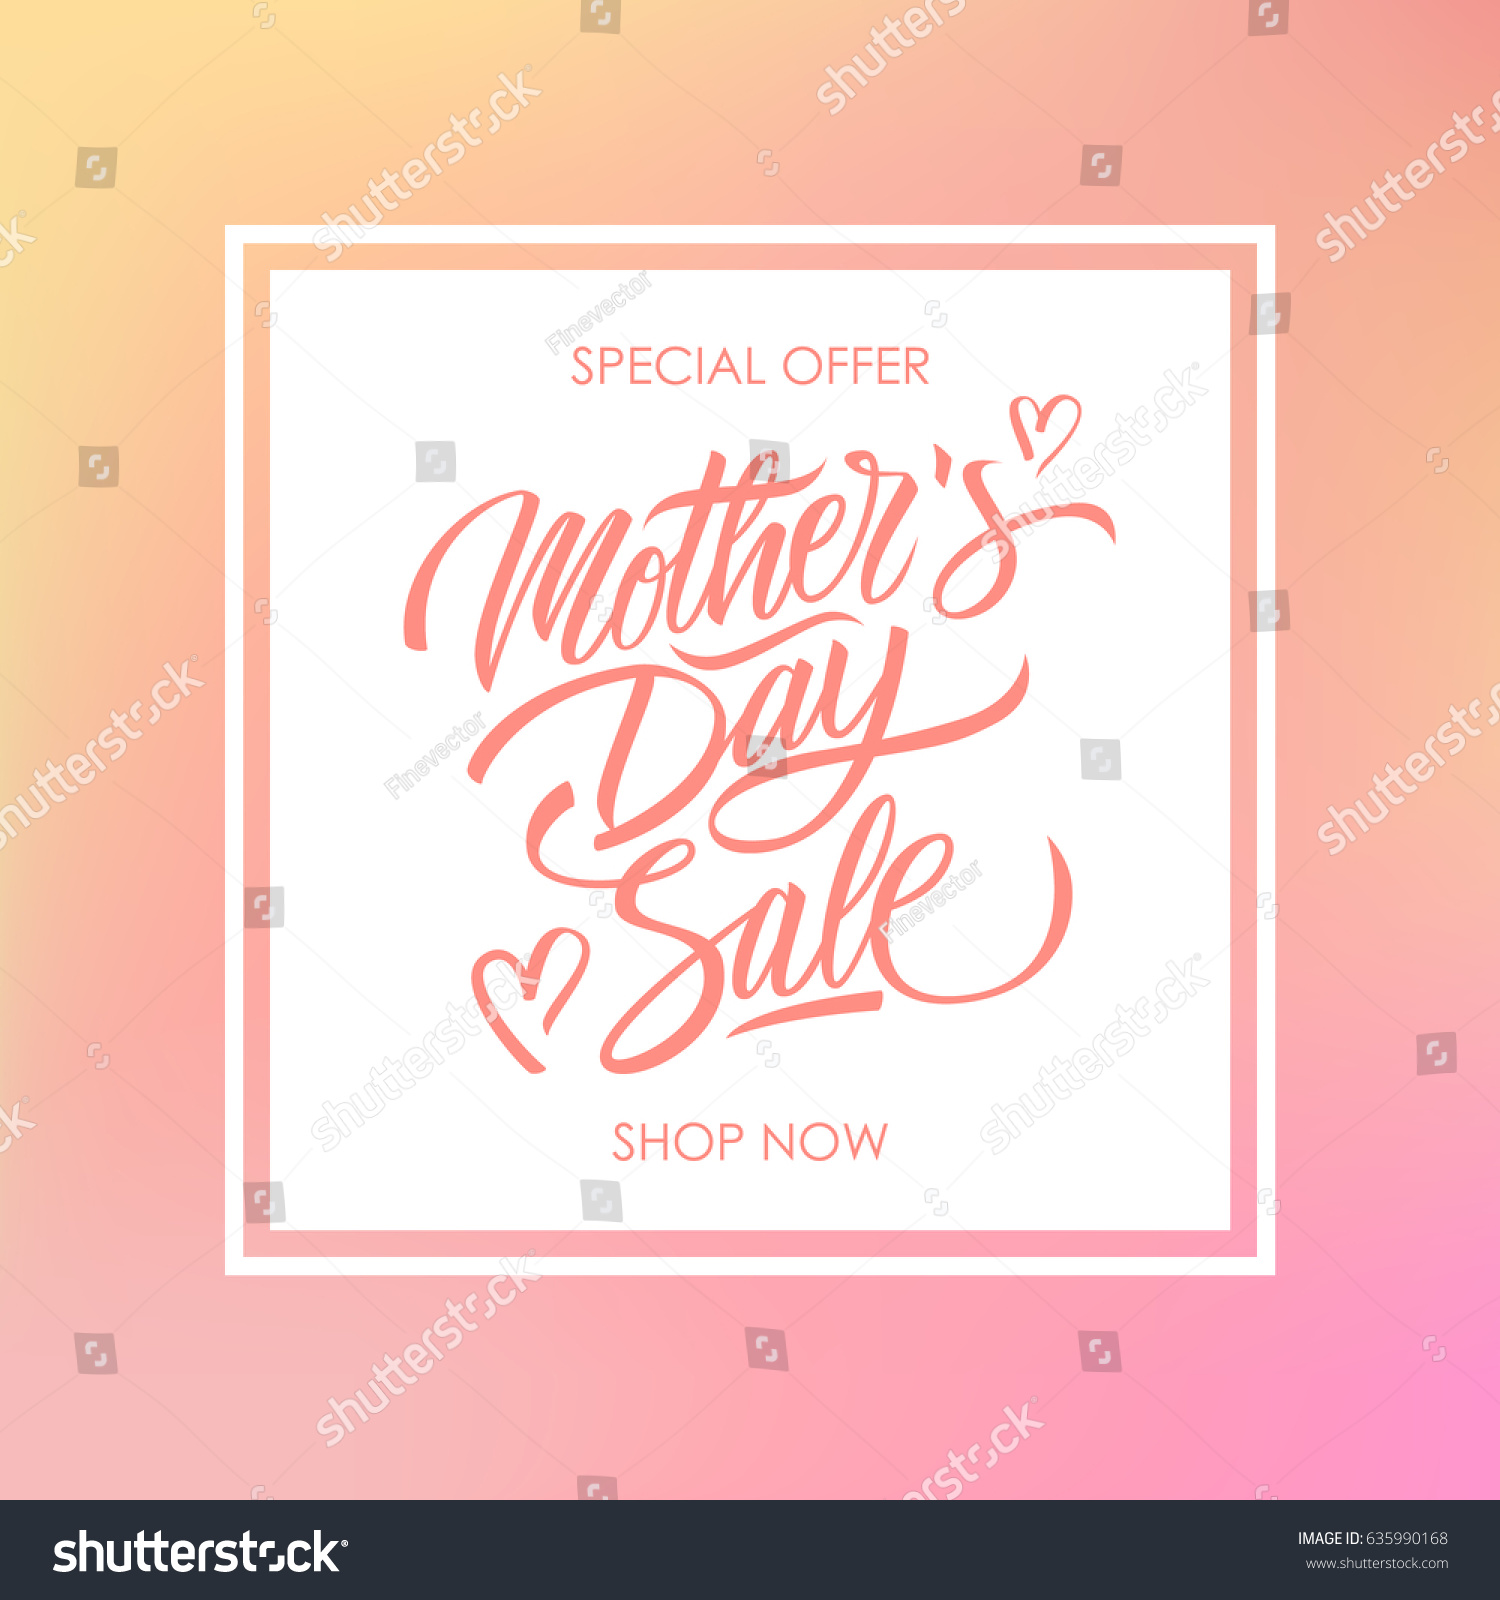 Mothers day sale special offer card stock vector 635990168 mothers day sale special offer card for business promotion and advertising calligraphic lettering text kristyandbryce Image collections